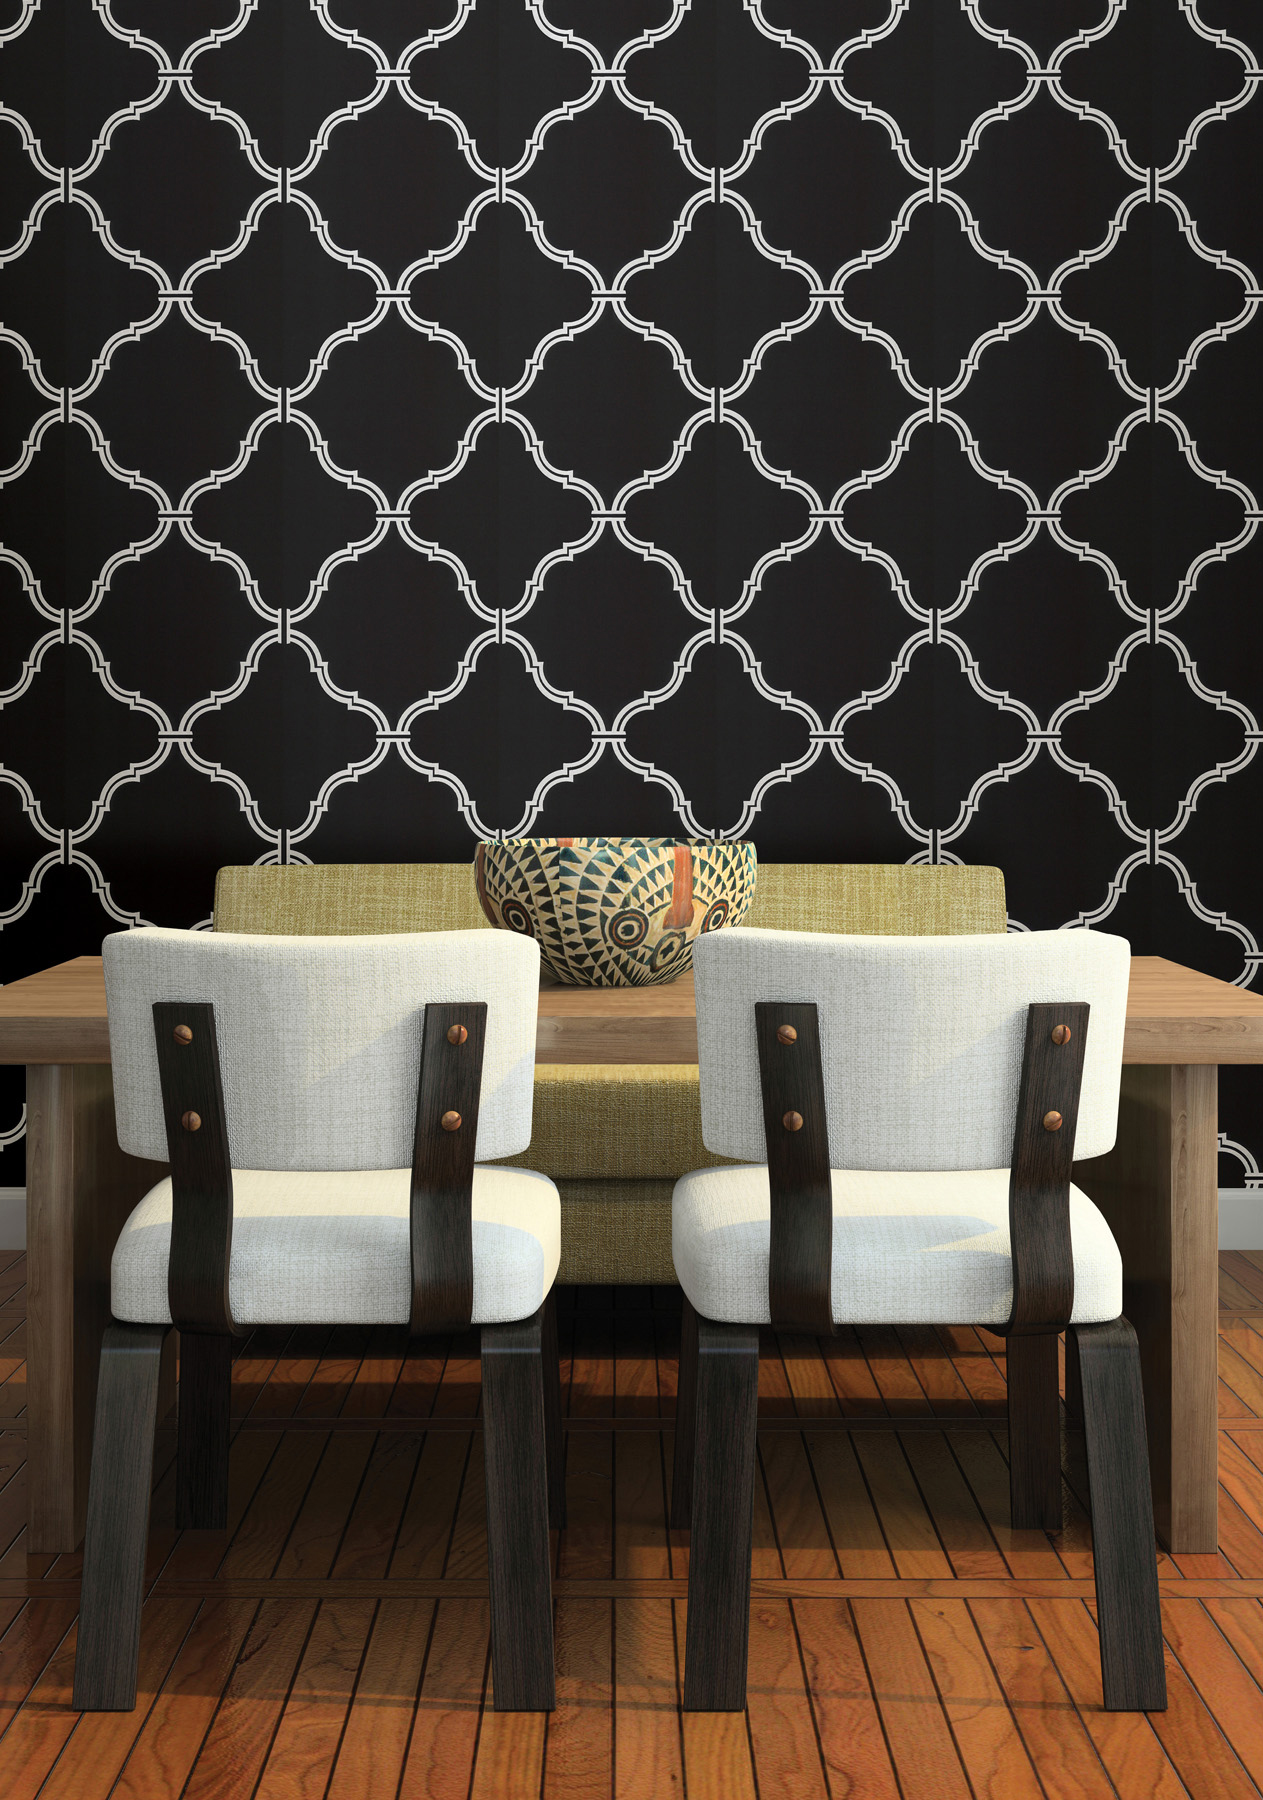 Make it modern with wallpaper brewster home - Trend wallpaper dining ...